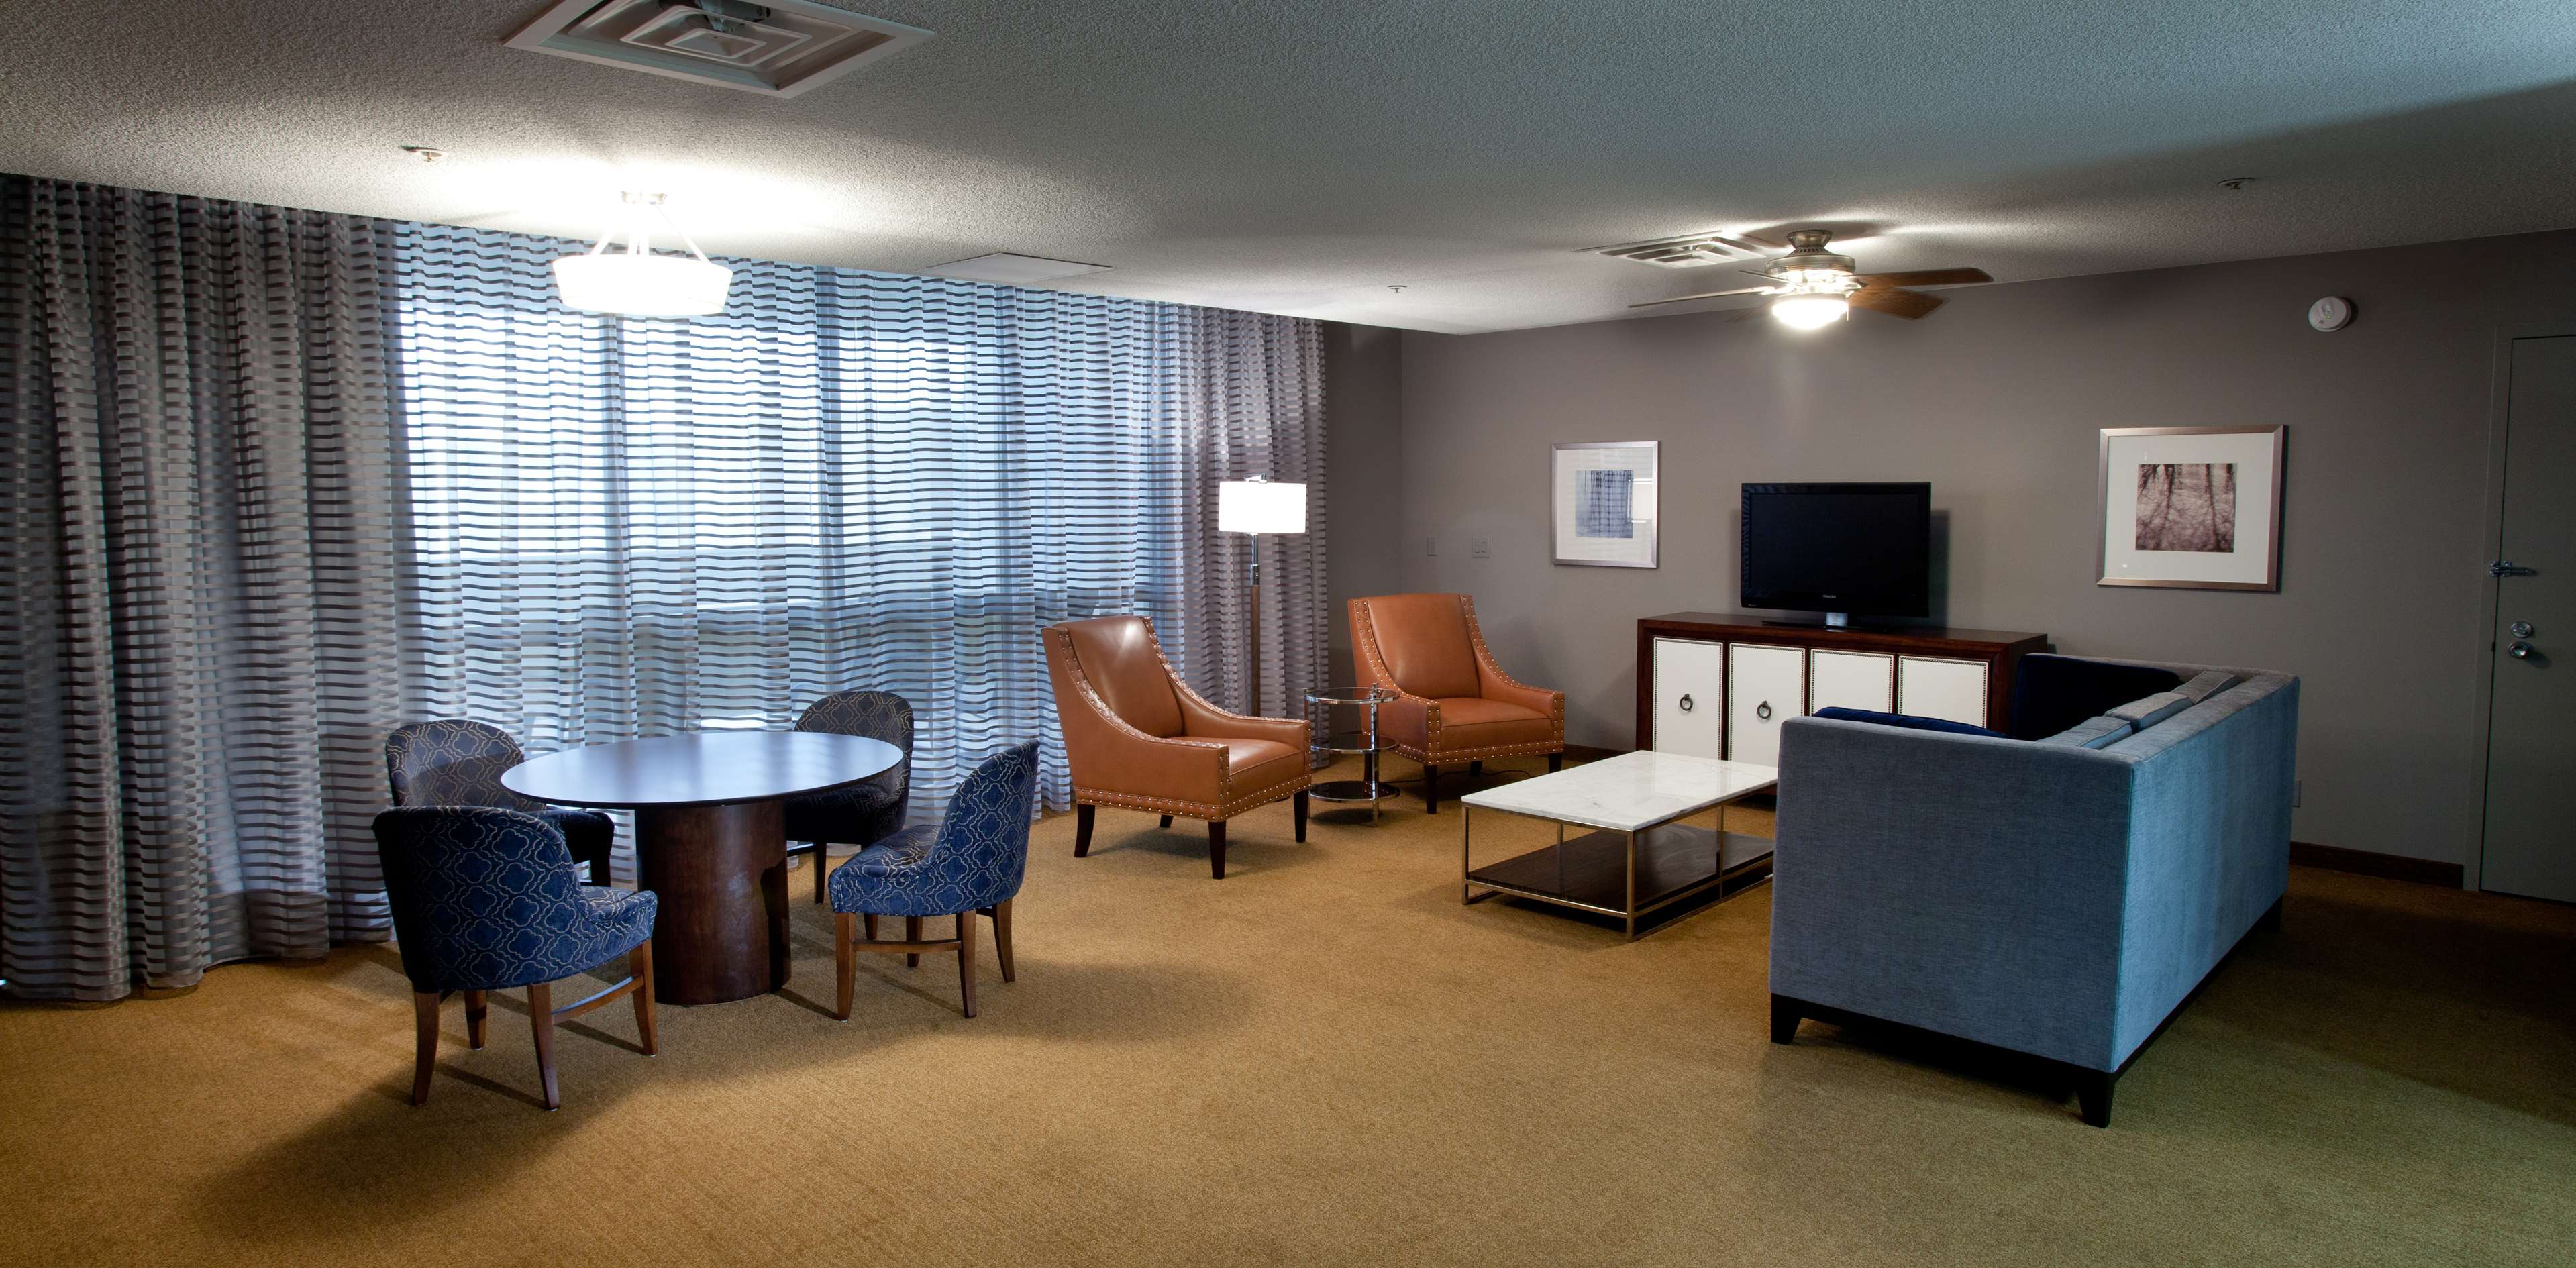 DoubleTree by Hilton Hotel Bloomington - Minneapolis South image 10